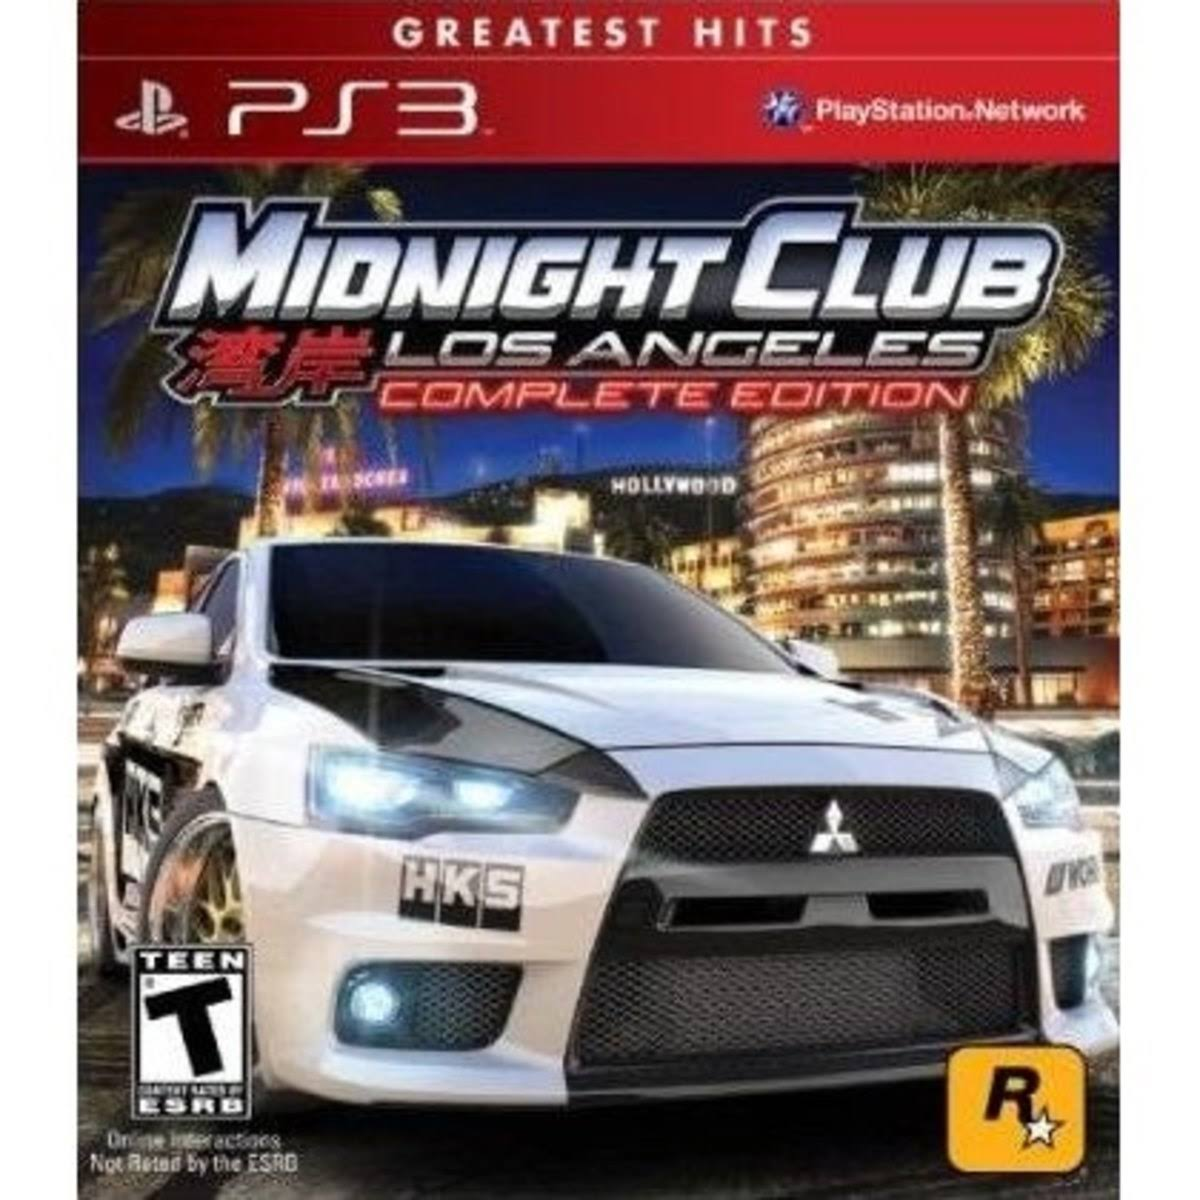 Midnight Club: Los Angeles Complete Edition - PlayStation 3